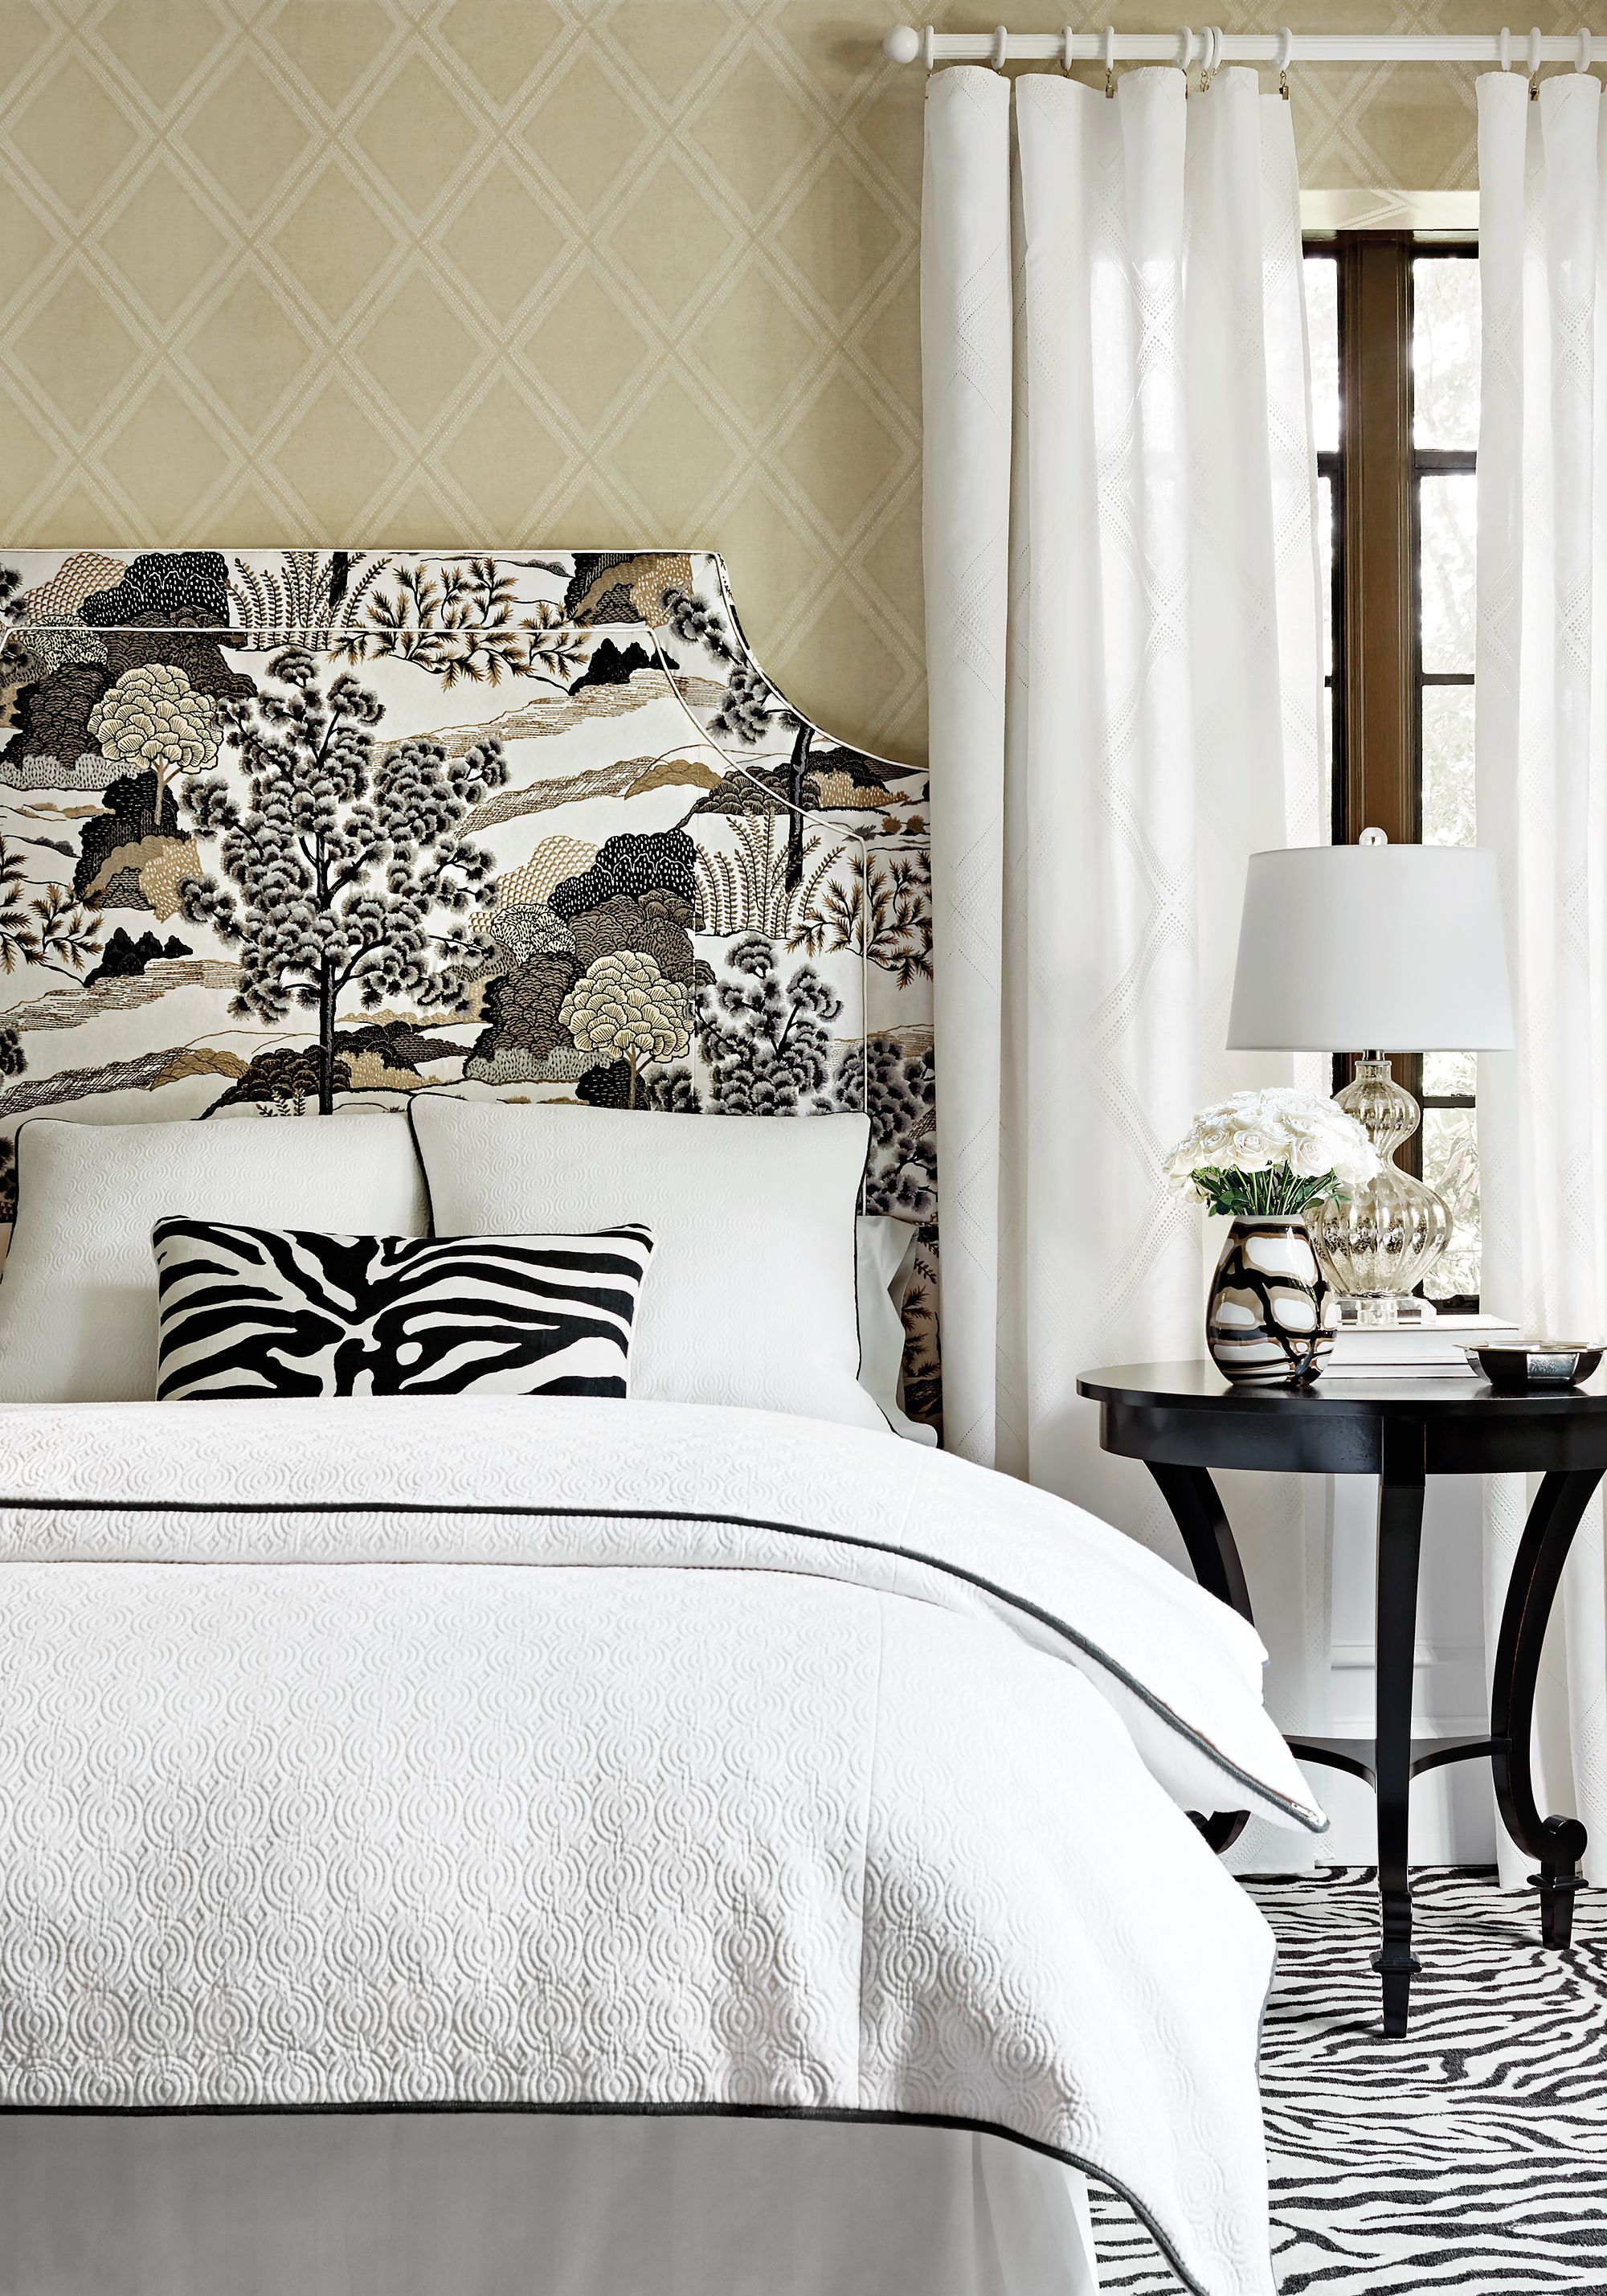 Alstons Manhattan Bedroom Furniture Ridgewood Headboard From Thibaut Fine Furniture In Daintree